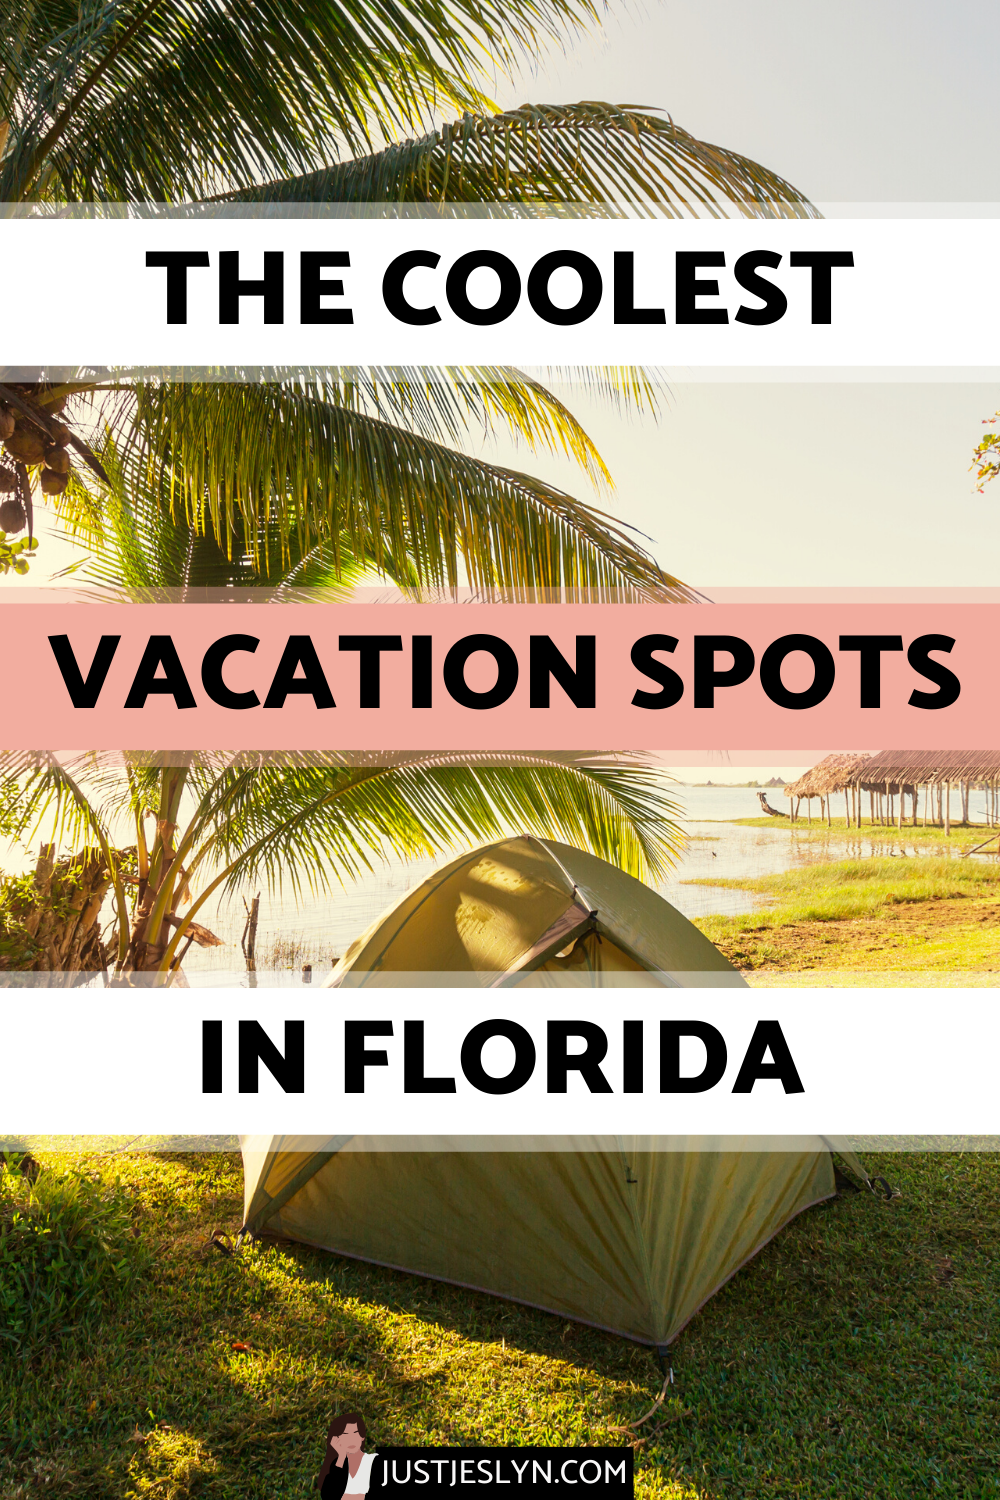 Vacation Spots In Florida 7 Cool Places You Ve Probably Never Heard Of Vacation Spots Family Beach Destinations Best Family Beaches